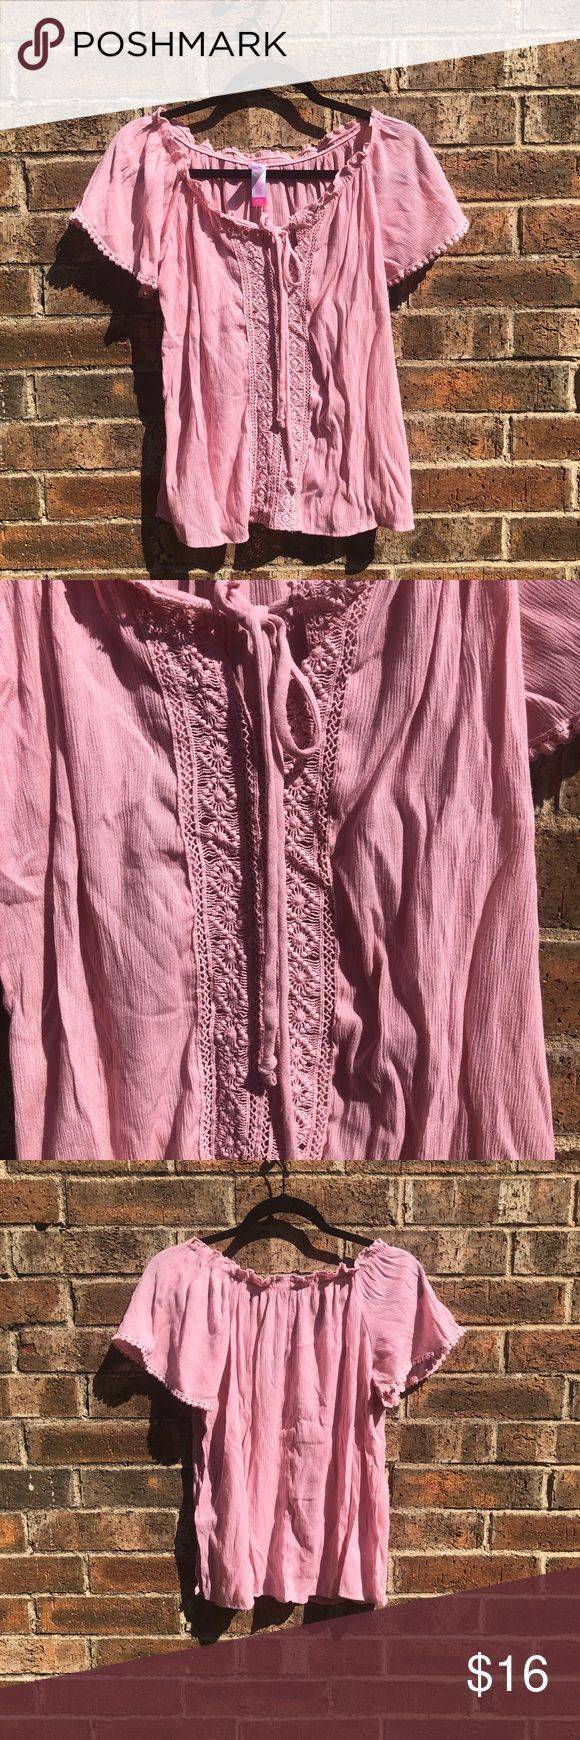 Pink Spanish style shirt Care tag not attached 46% rayon  39% polyester  15% cotton No Boundaries Tops Tees - Short Sleeve